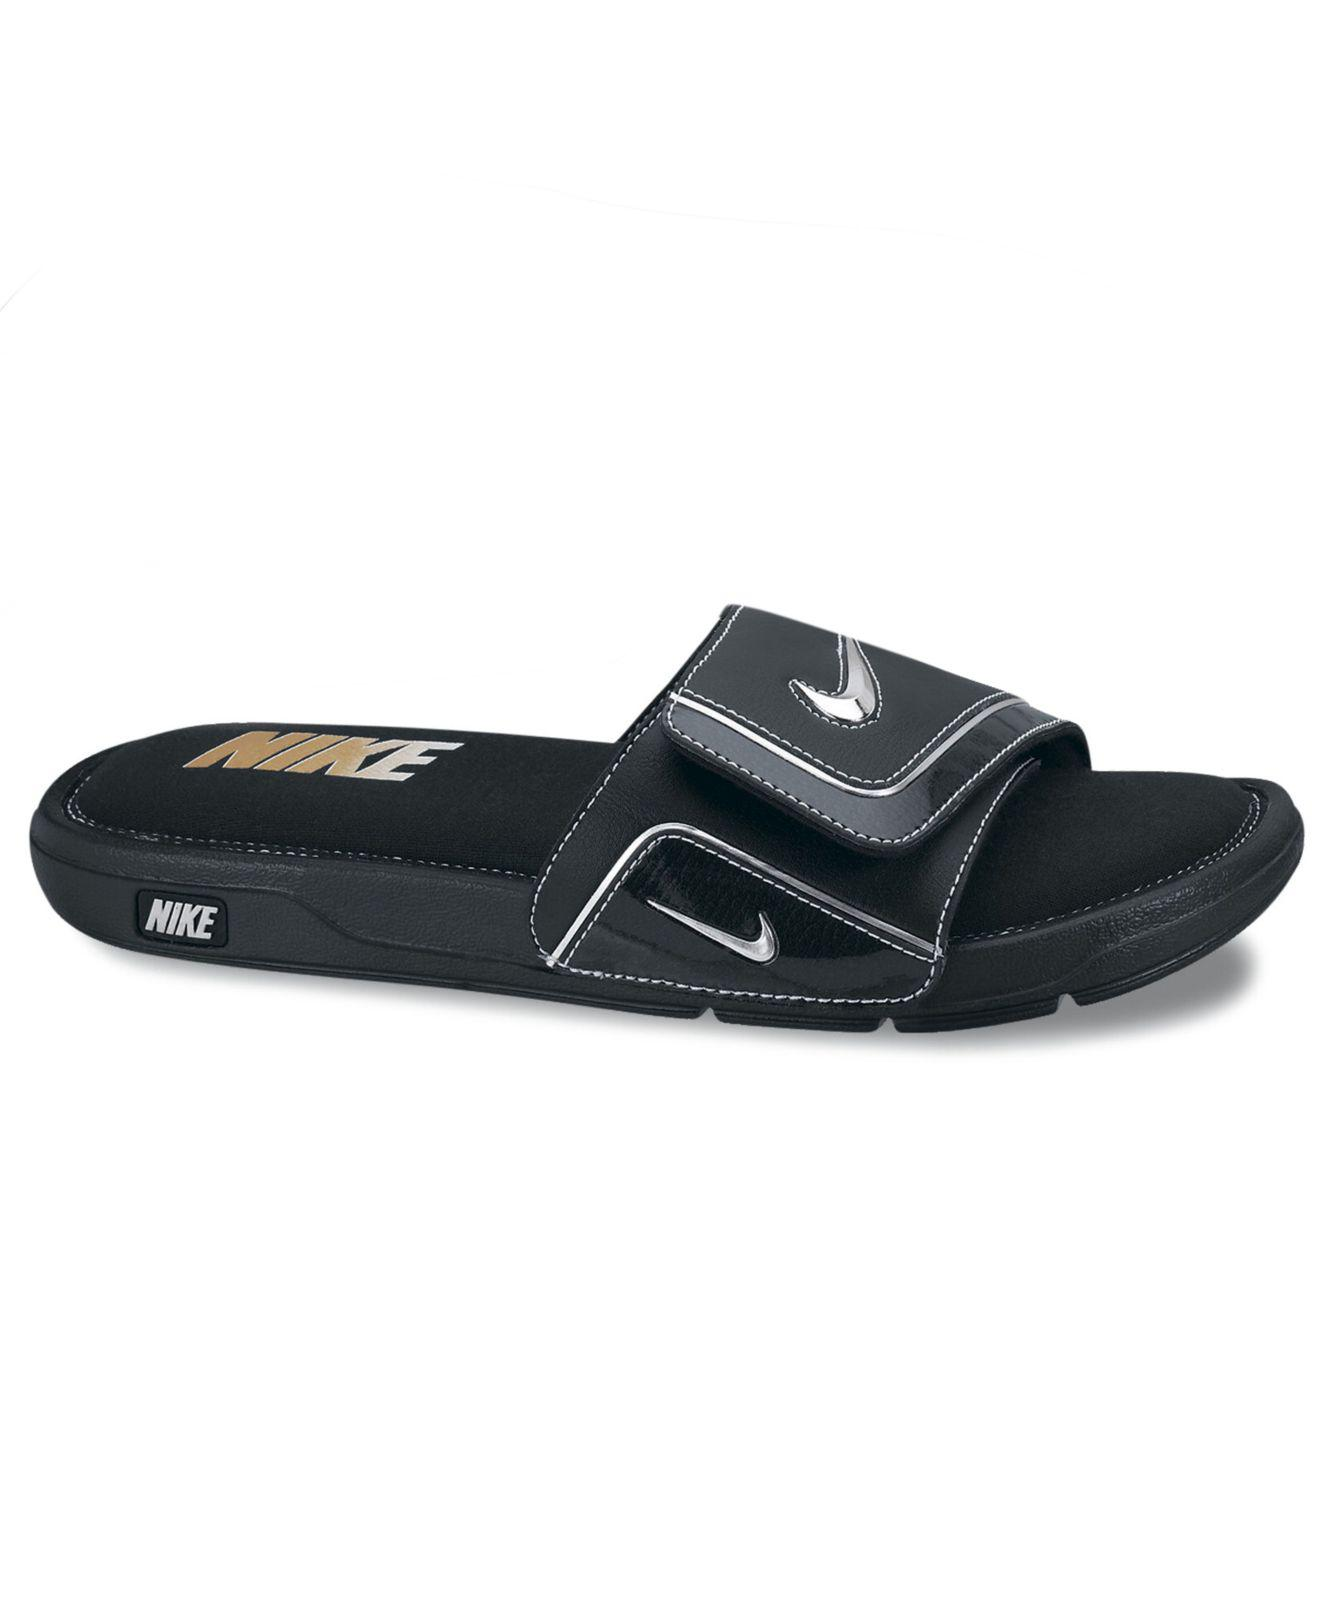 166902e9e Nike - Black Men s Comfort Slides From Finish Line for Men - Lyst. View  fullscreen